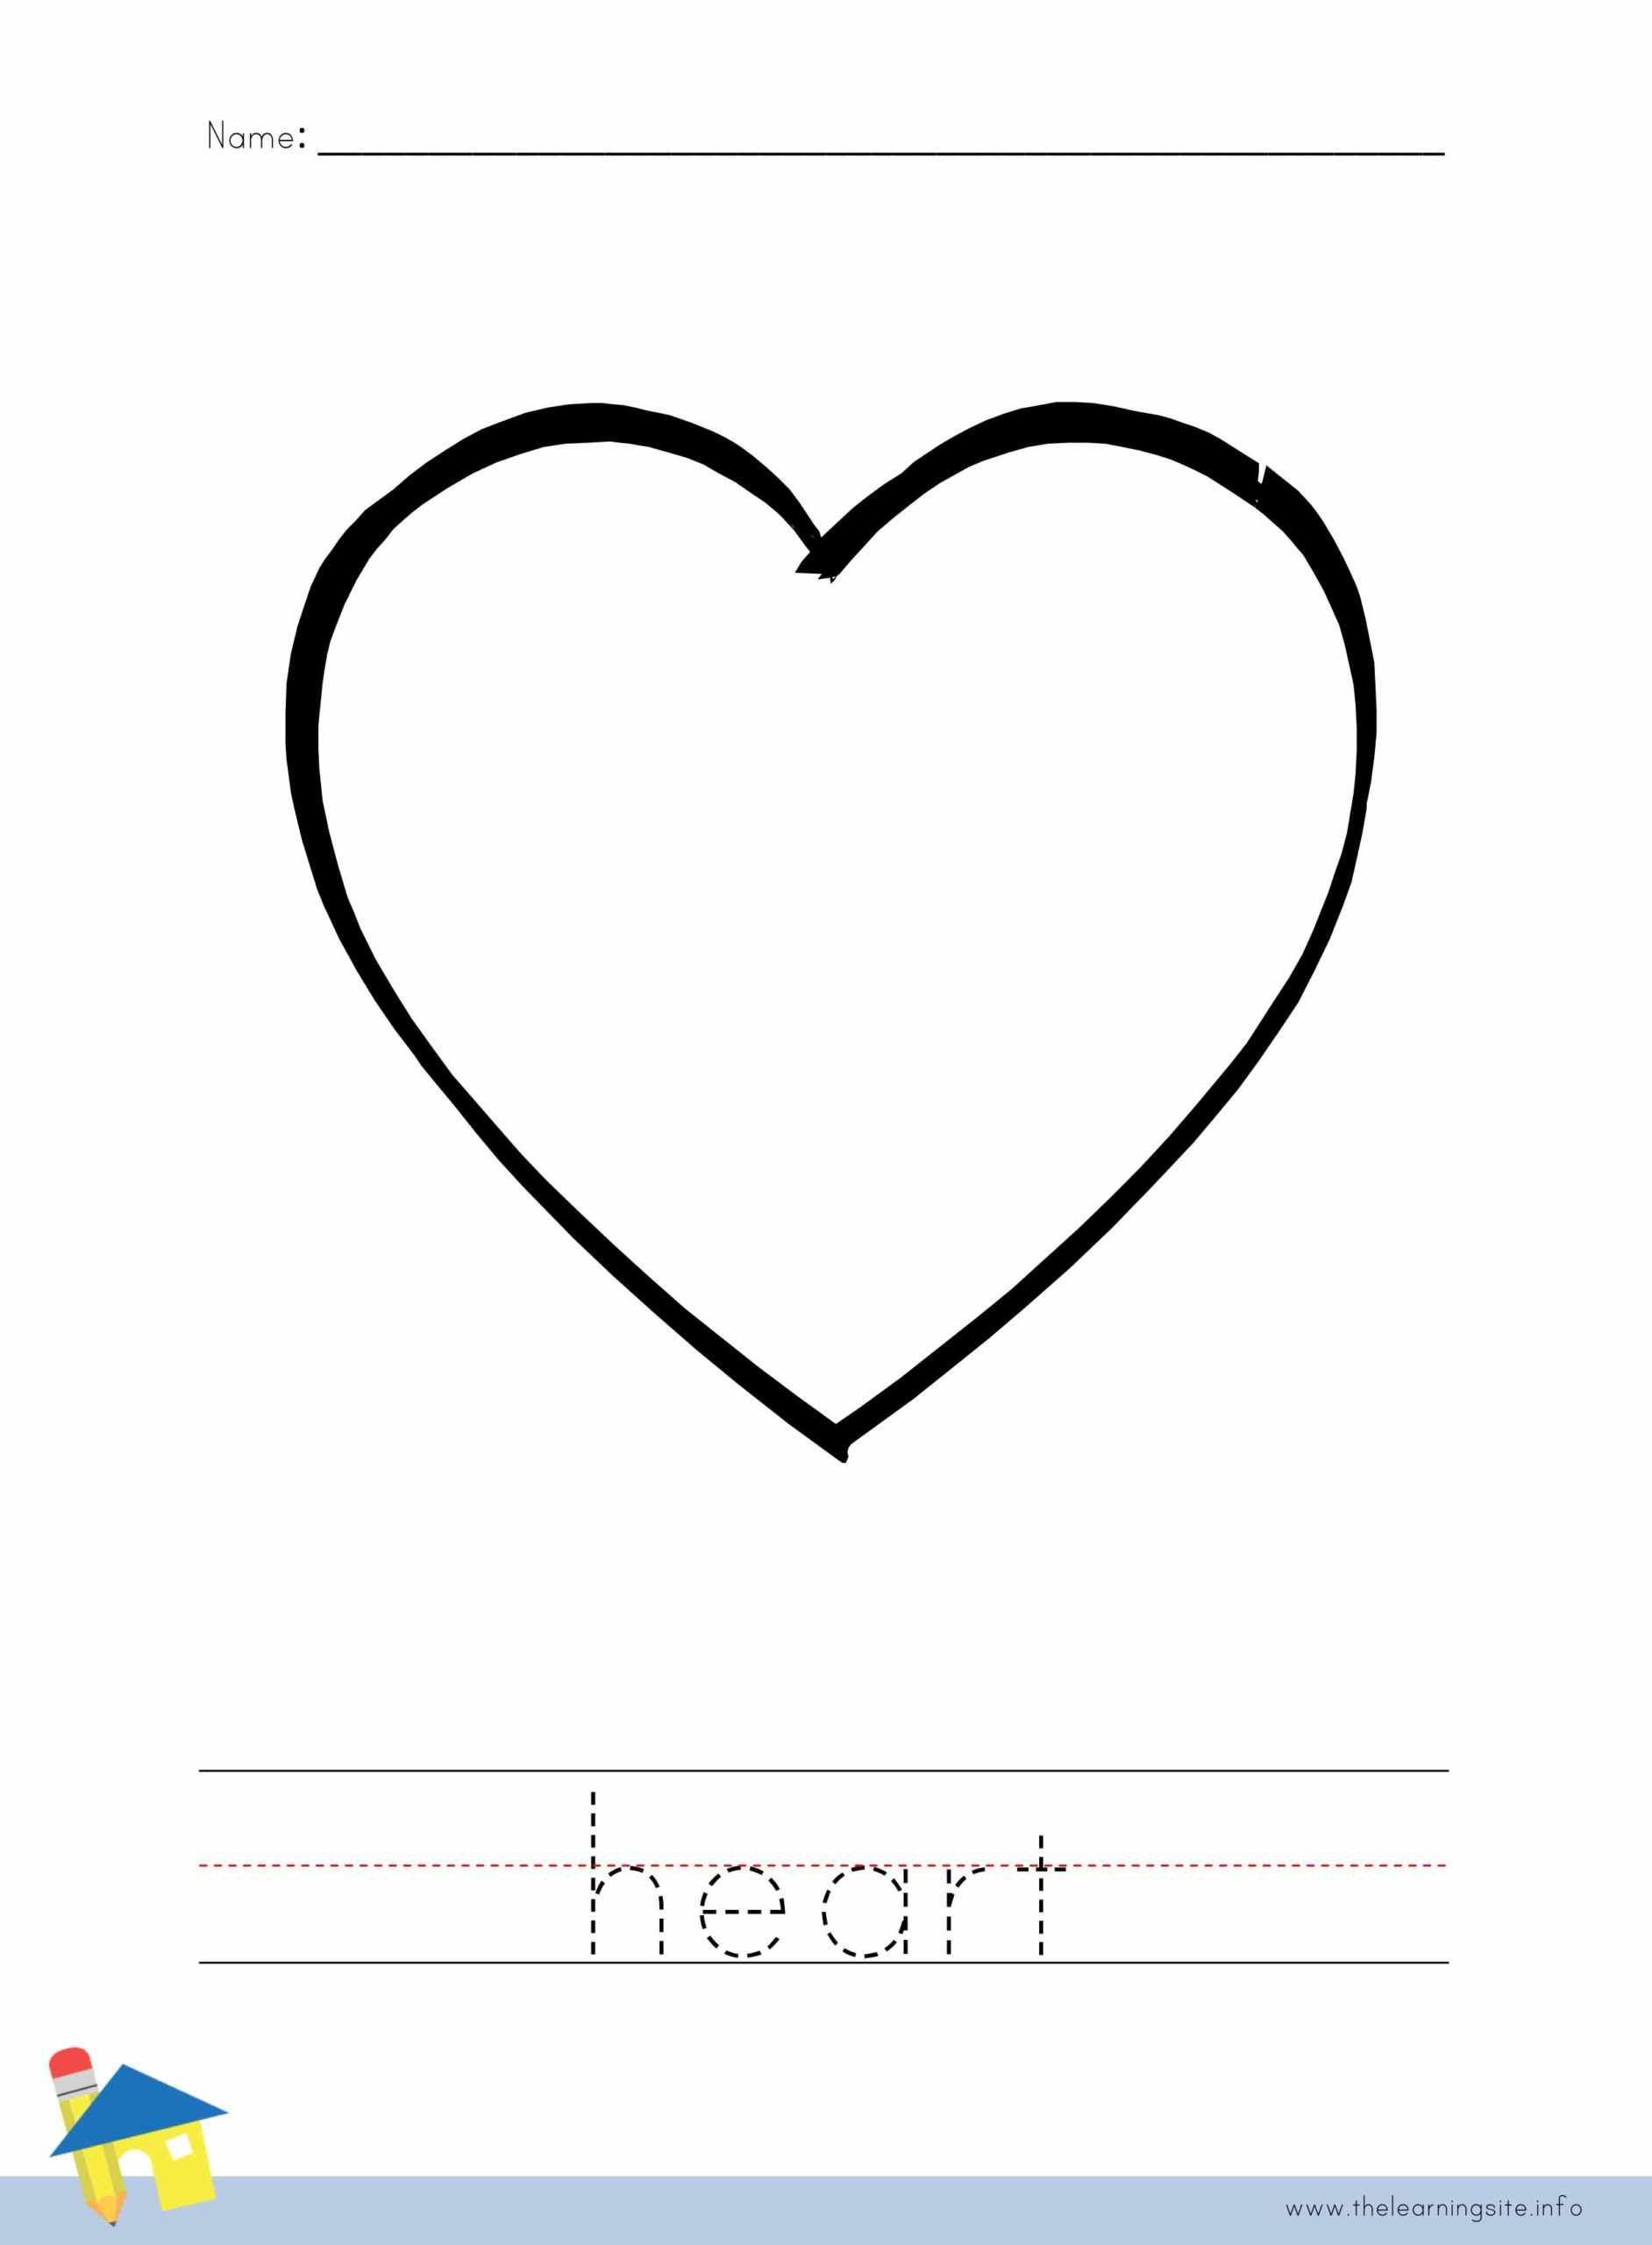 Heart Coloring Worksheet The Learning Site